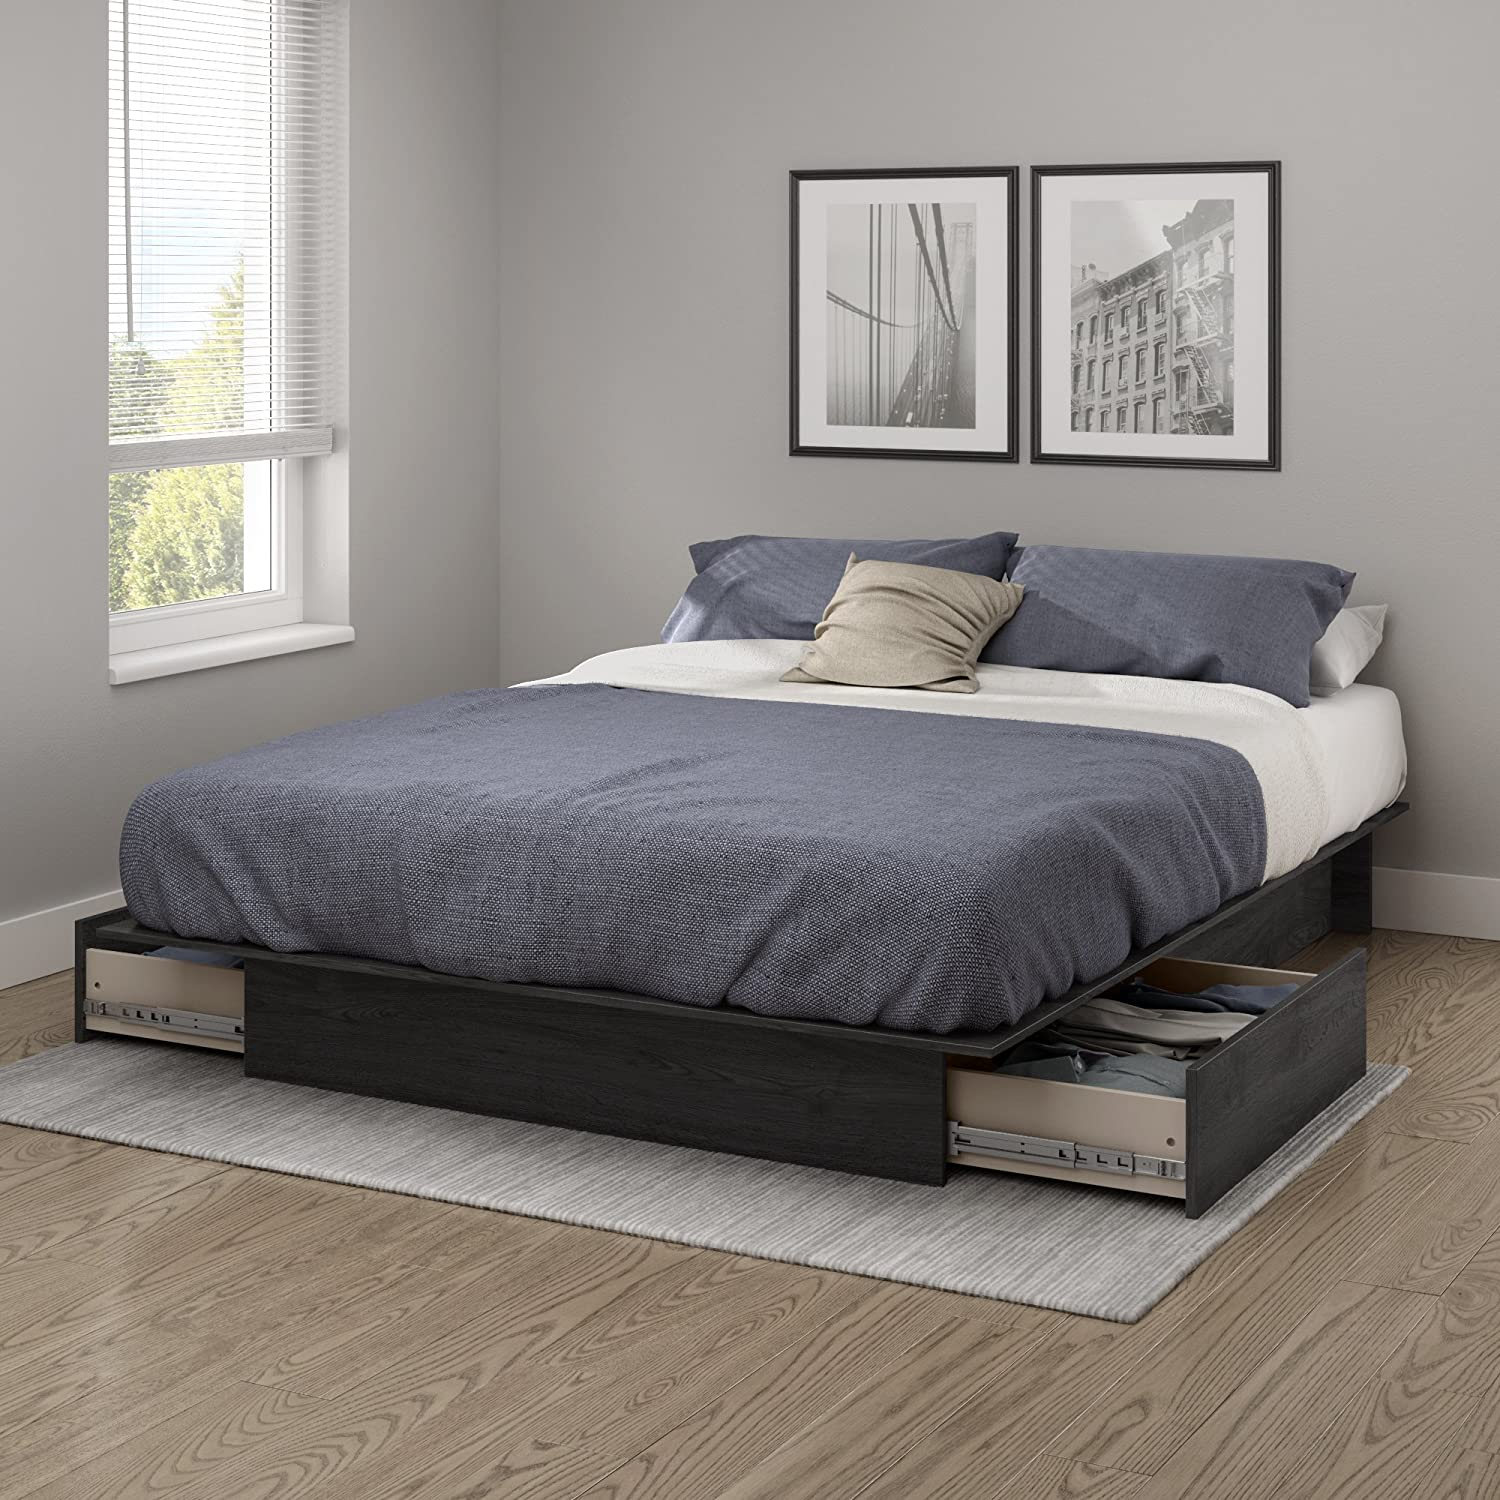 Queen platform bed frame - Amazon Com South Shore Step One Platform Bed With Drawers Full Queen Gray Oak Kitchen Dining